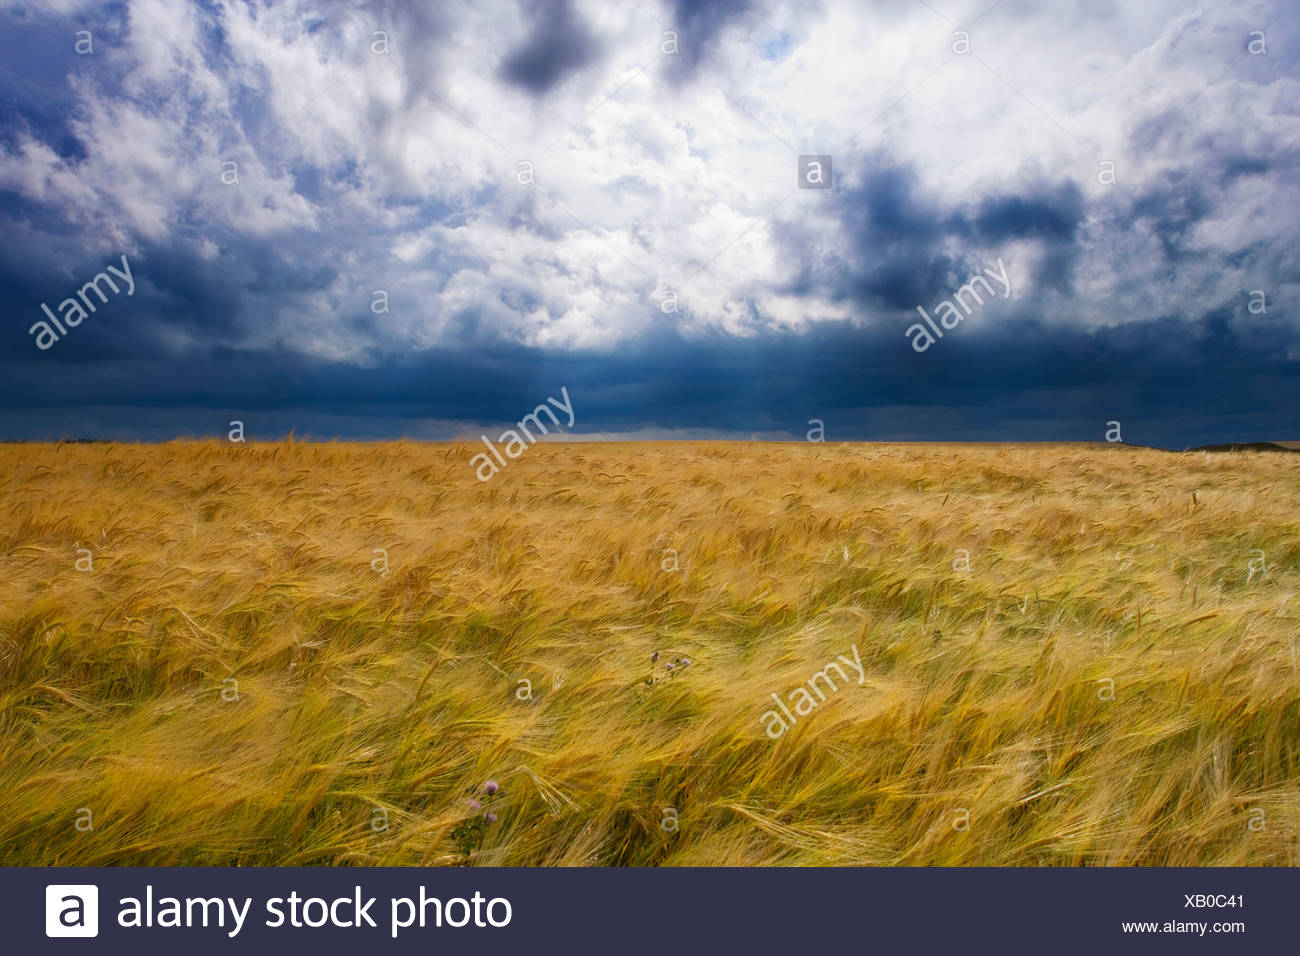 Thunder storm moving over grain field, Ridge Road 221, Alberta, Canada, cloud, weather, agriculture - Stock Image